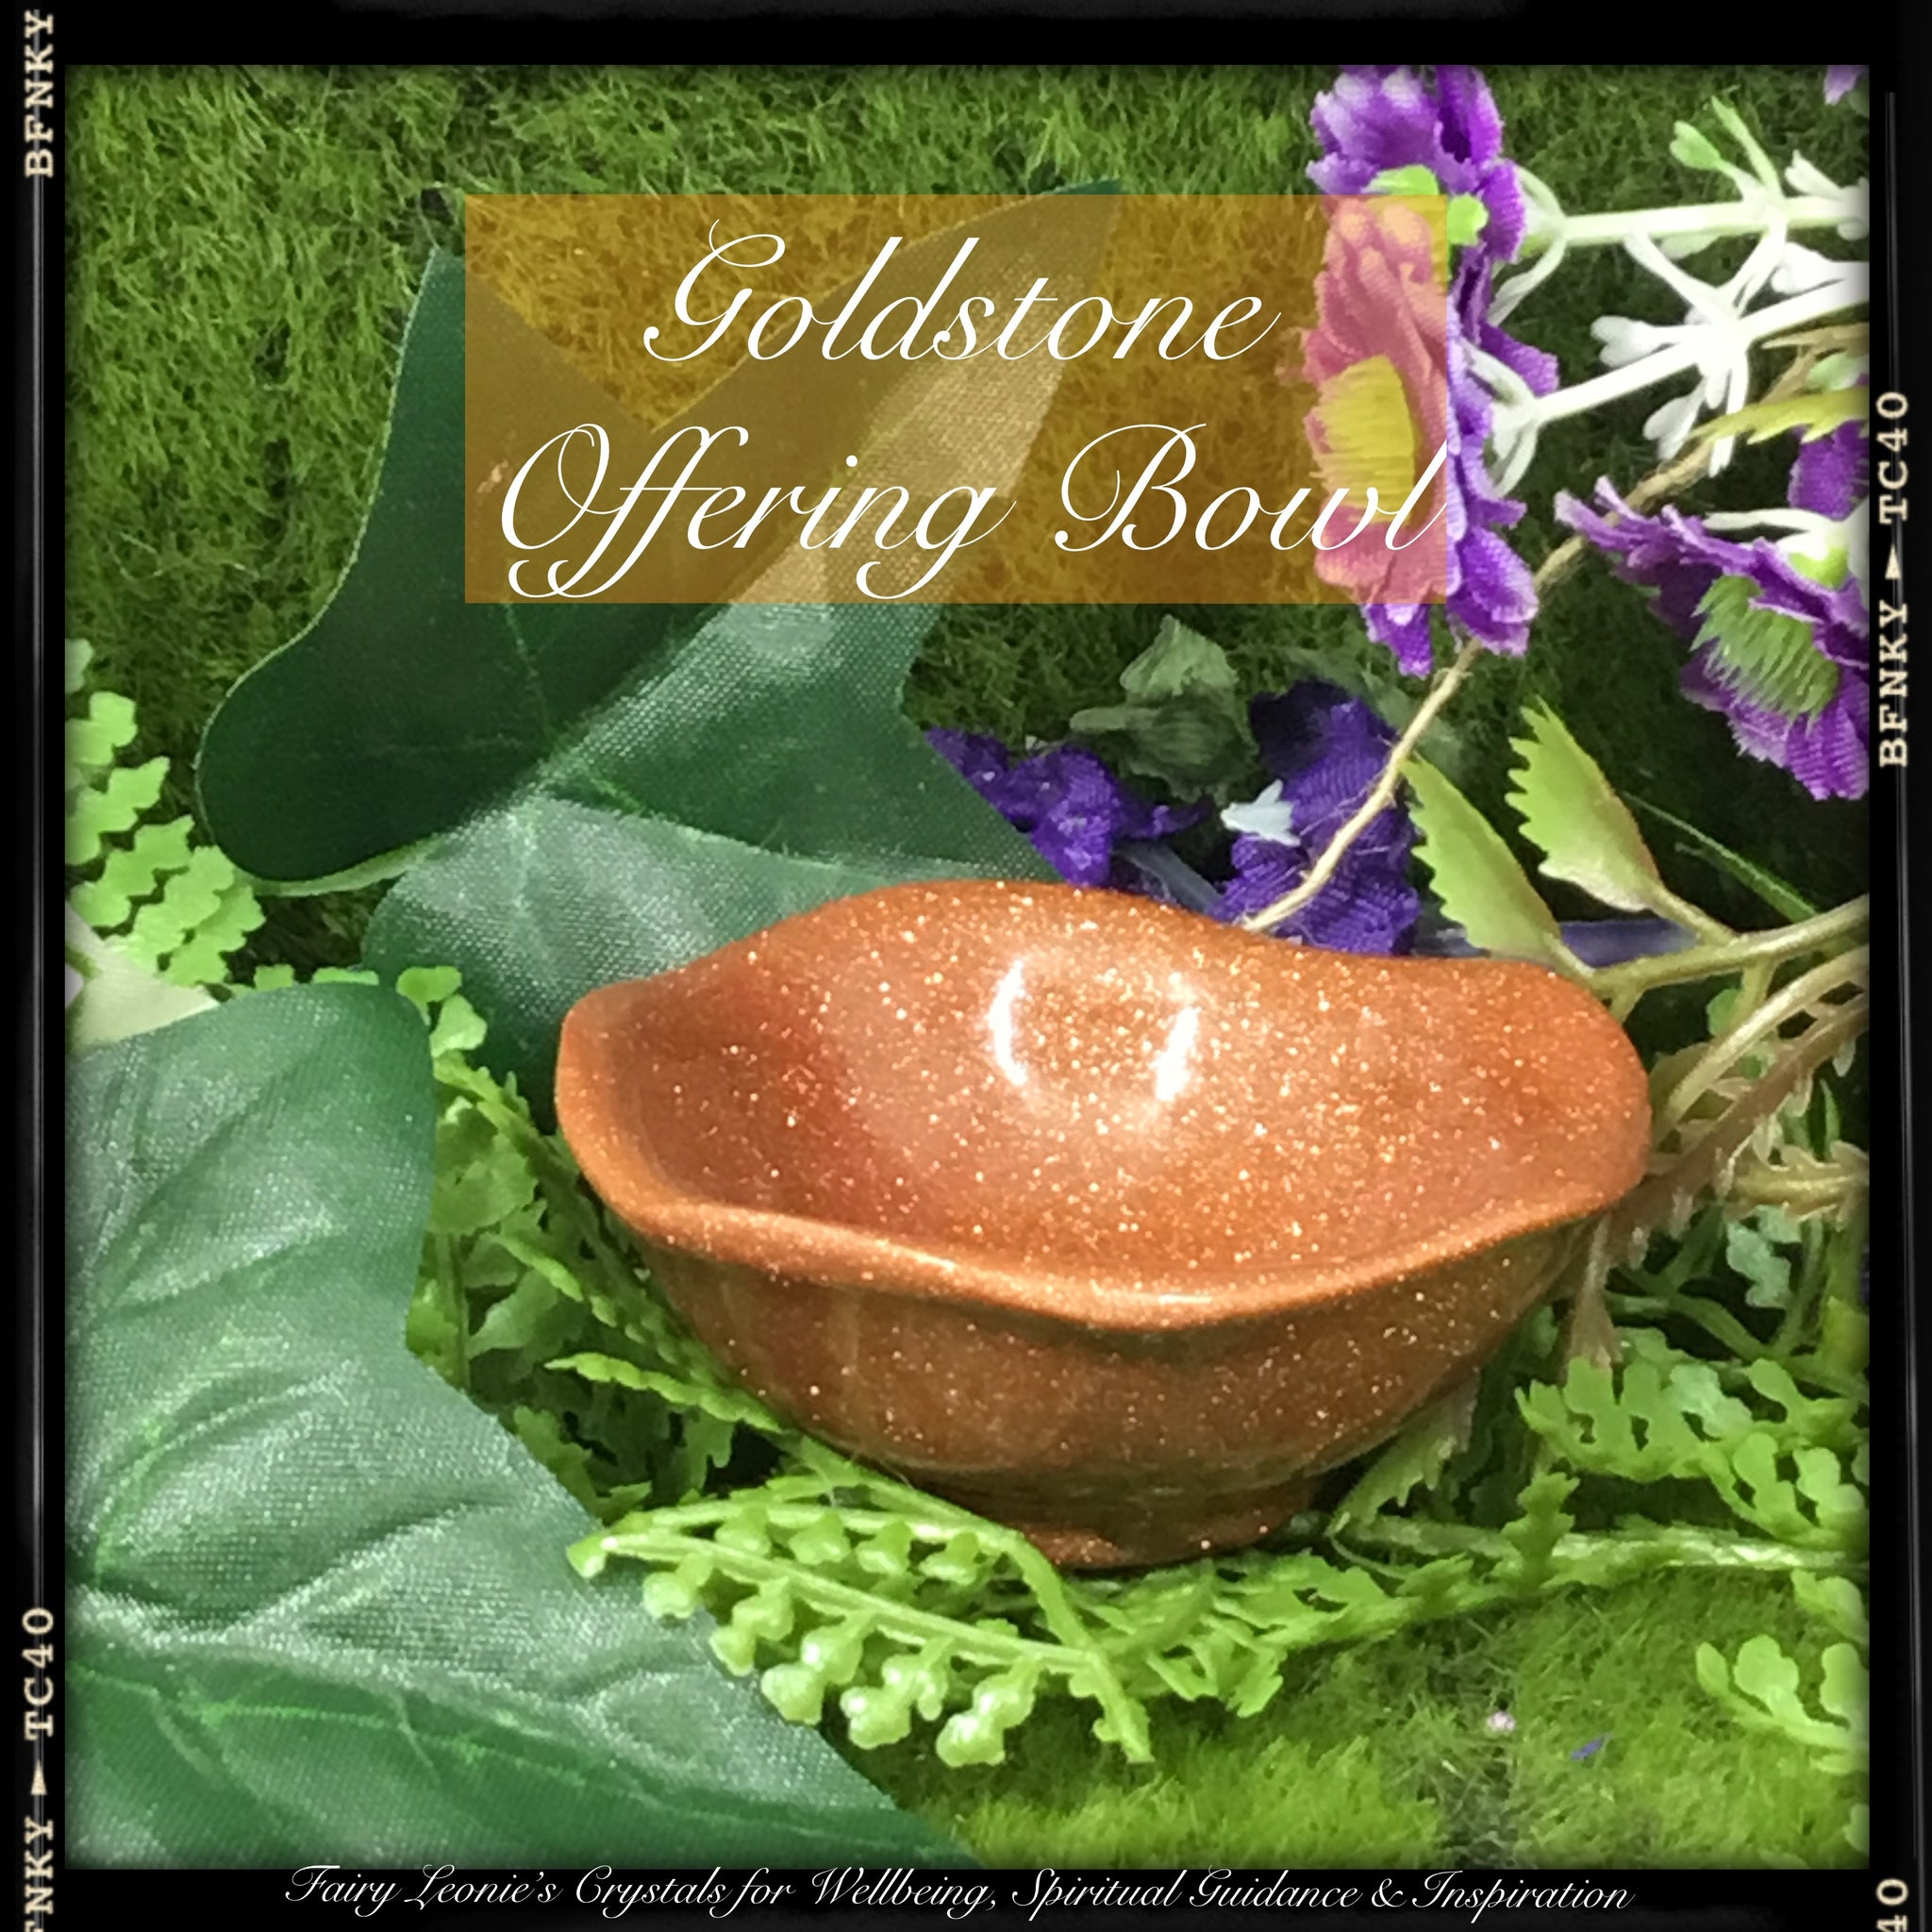 Crystals for Joy & Happiness GOLDSTONE Crystals Offering Bowl